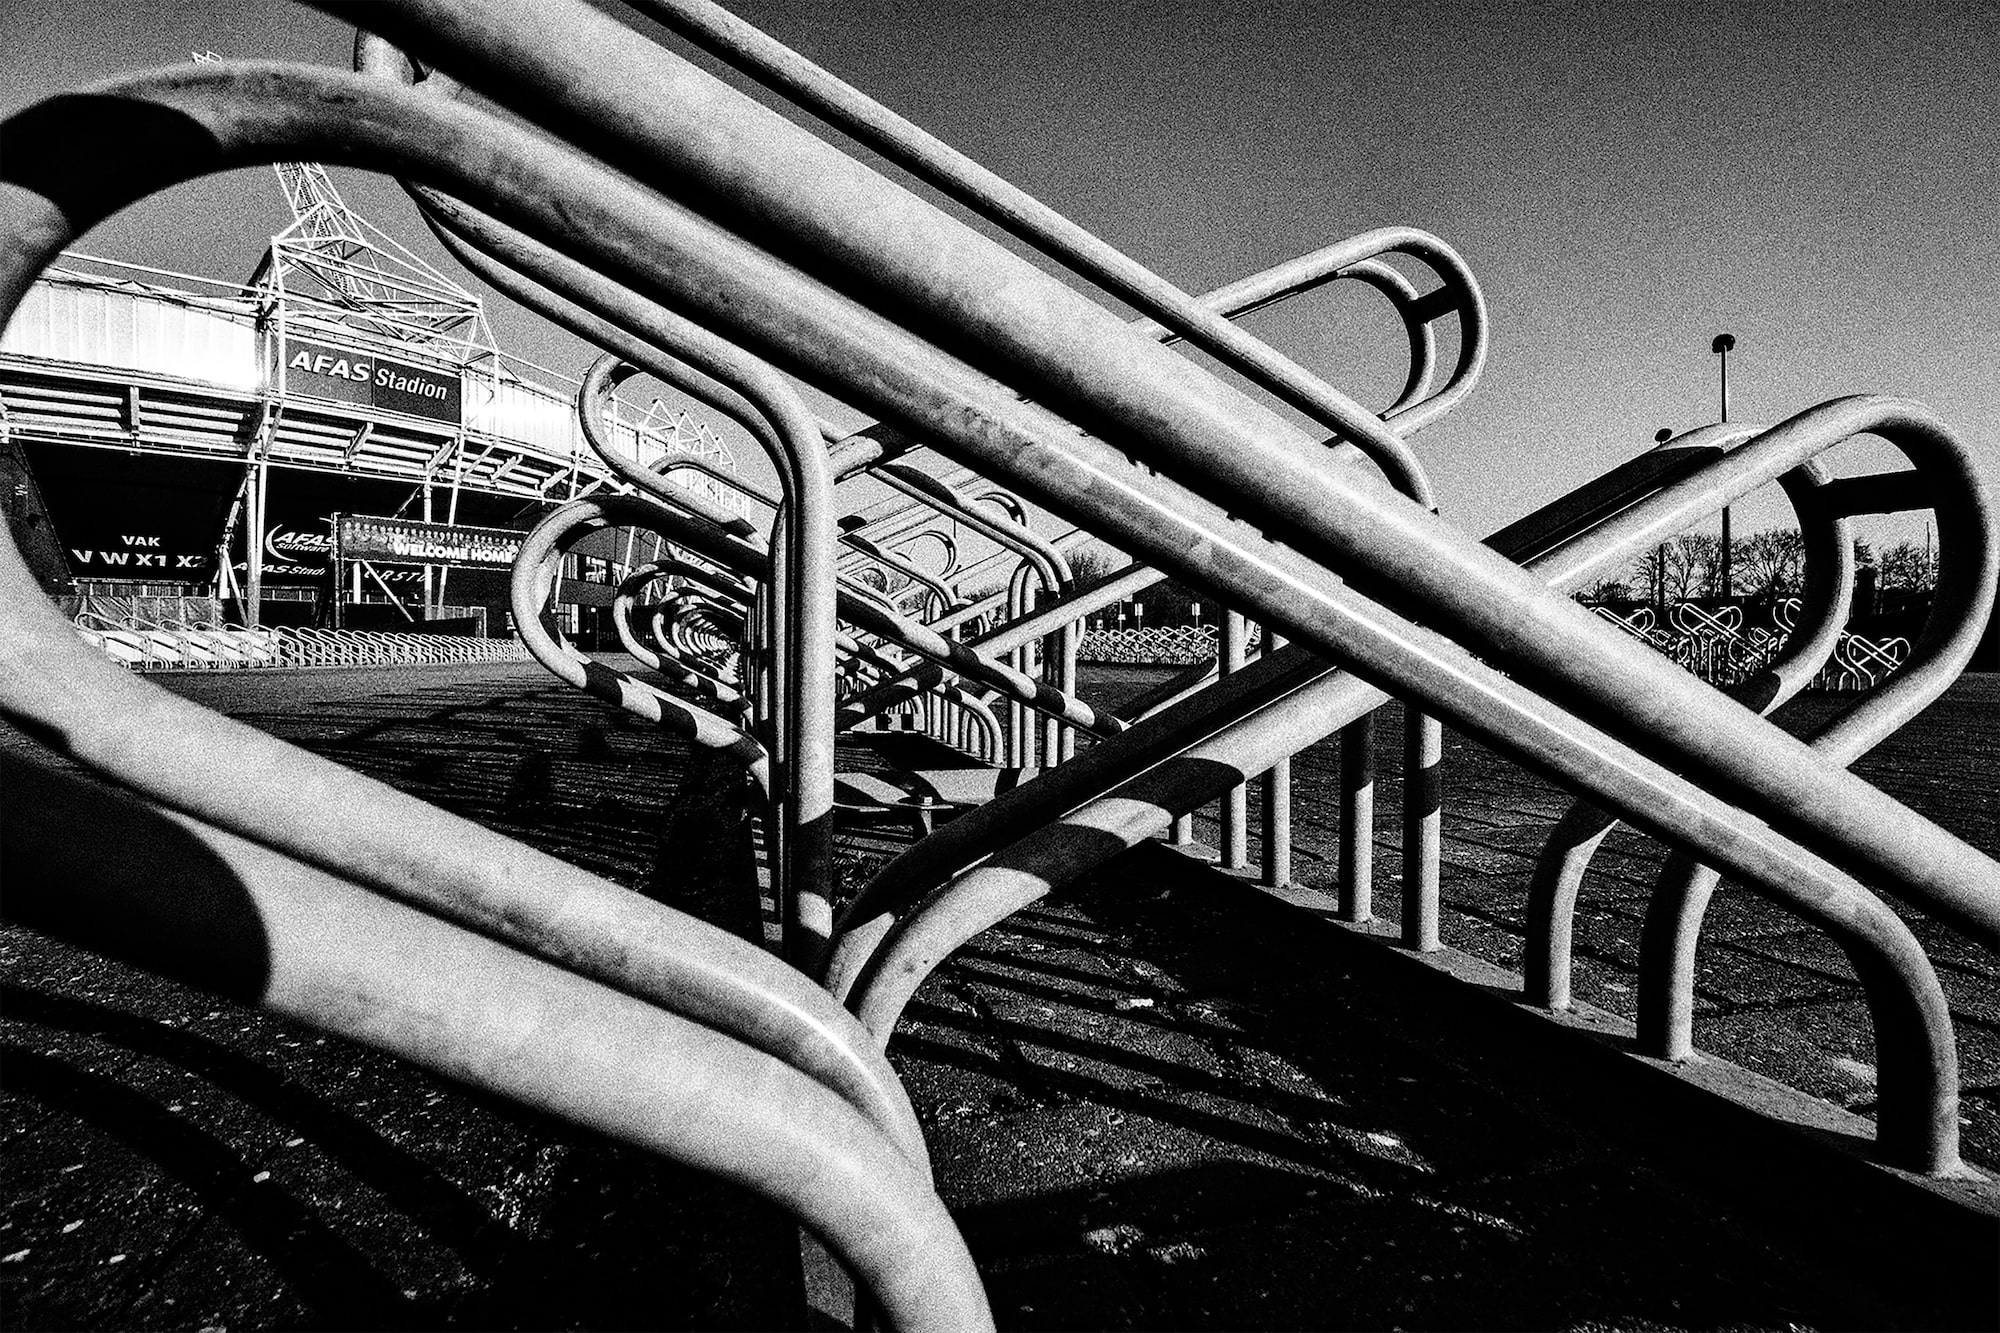 brendan de clercq sony alpha 6600 empty bike racks outside a sports stadium